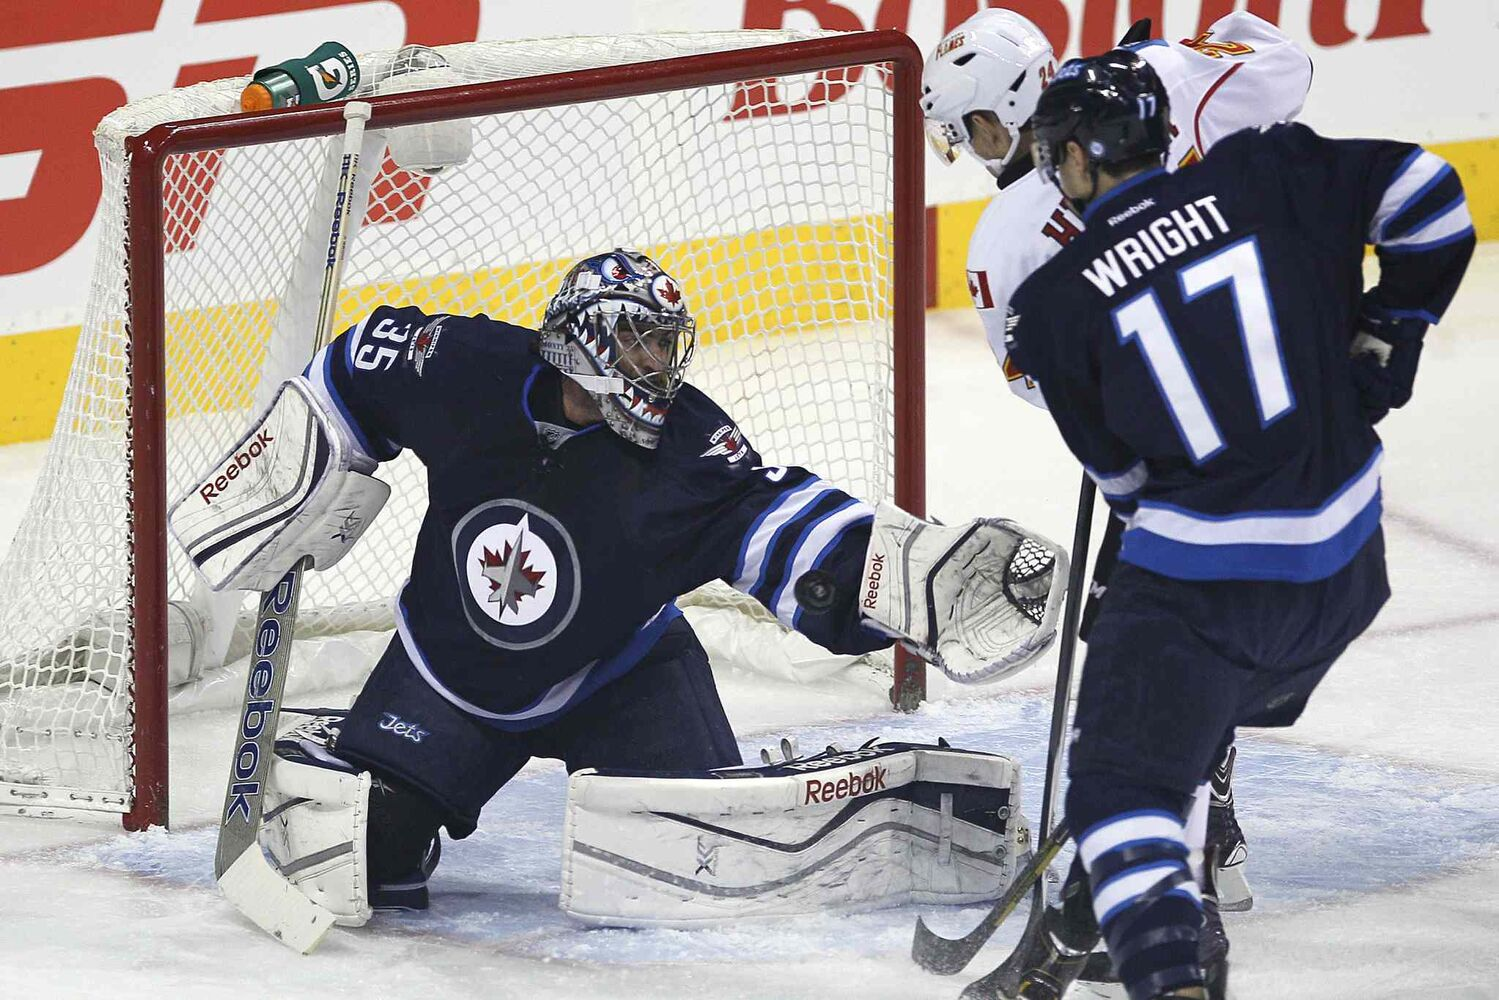 Winnipeg Jets' goaltender Al Montoya (35) stops the shot from the point as Calgary Flames' Jiri Hudler (24) and Jets' Matt Halischuk (15) look for the rebound during first period NHL action in Winnipeg on Monday, Nov. 18, 2013. (John Woods / Winnipeg Free Press)